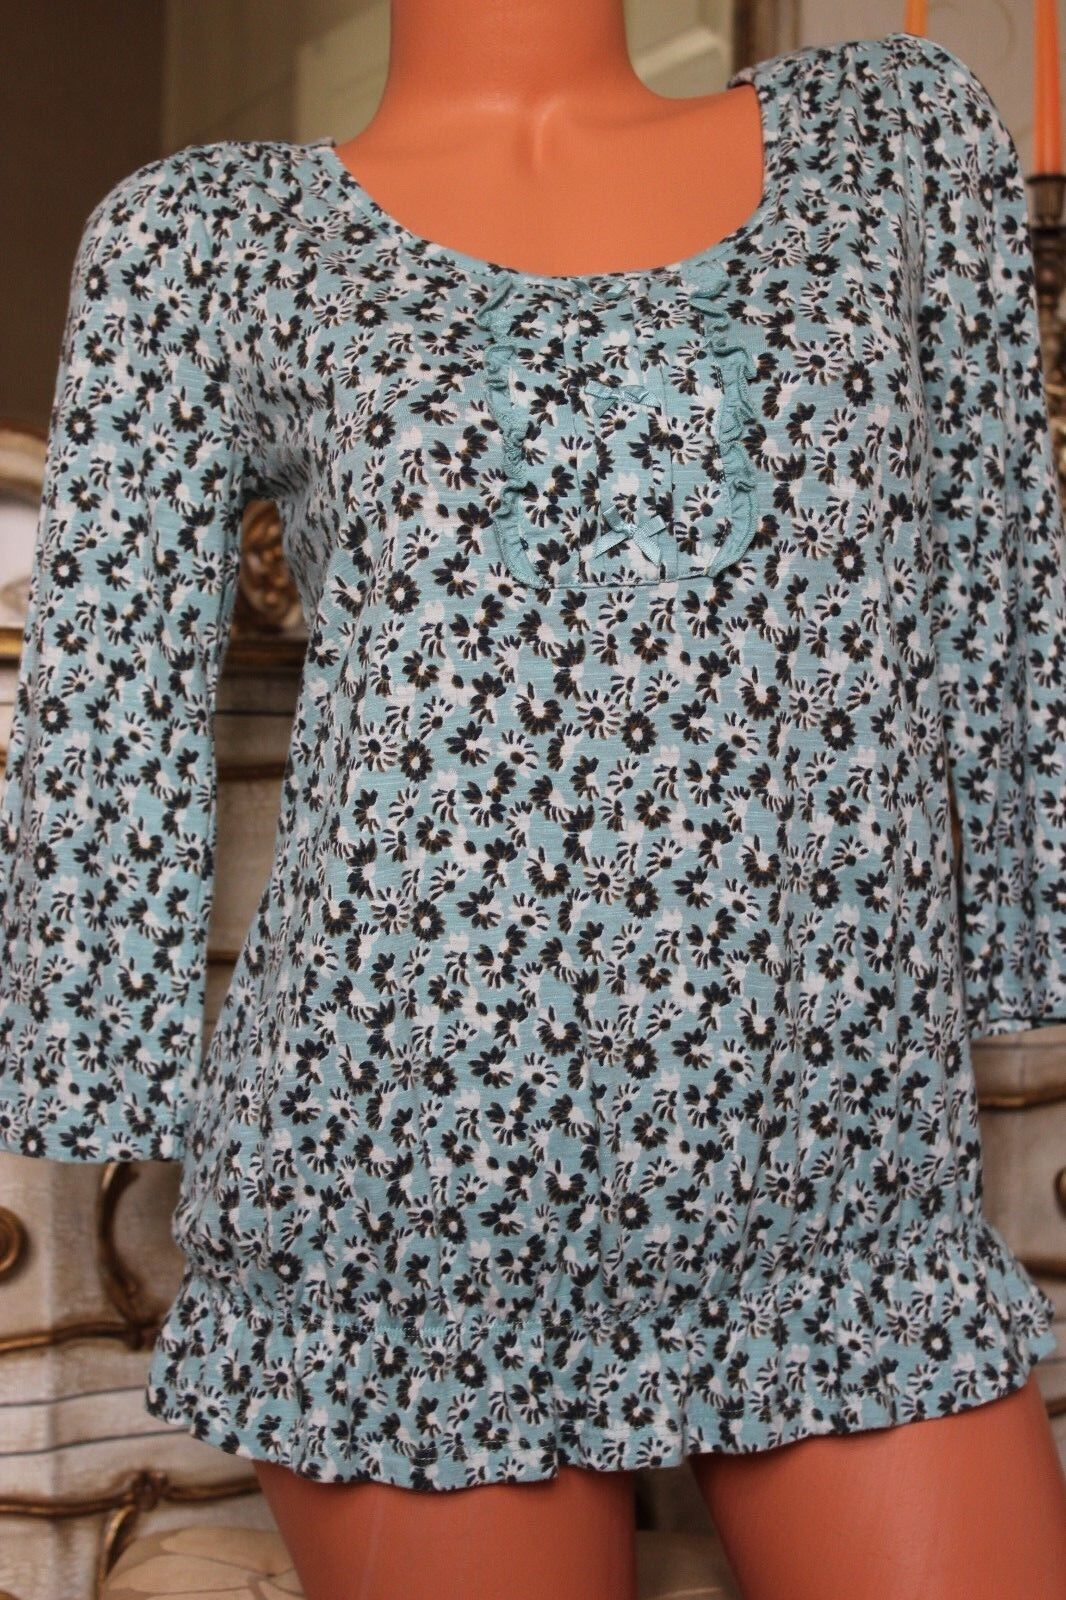 (Ref 21) MONSOON Cotton Mix Ladies Elasticated  Floral Print  Top   Tunic size S